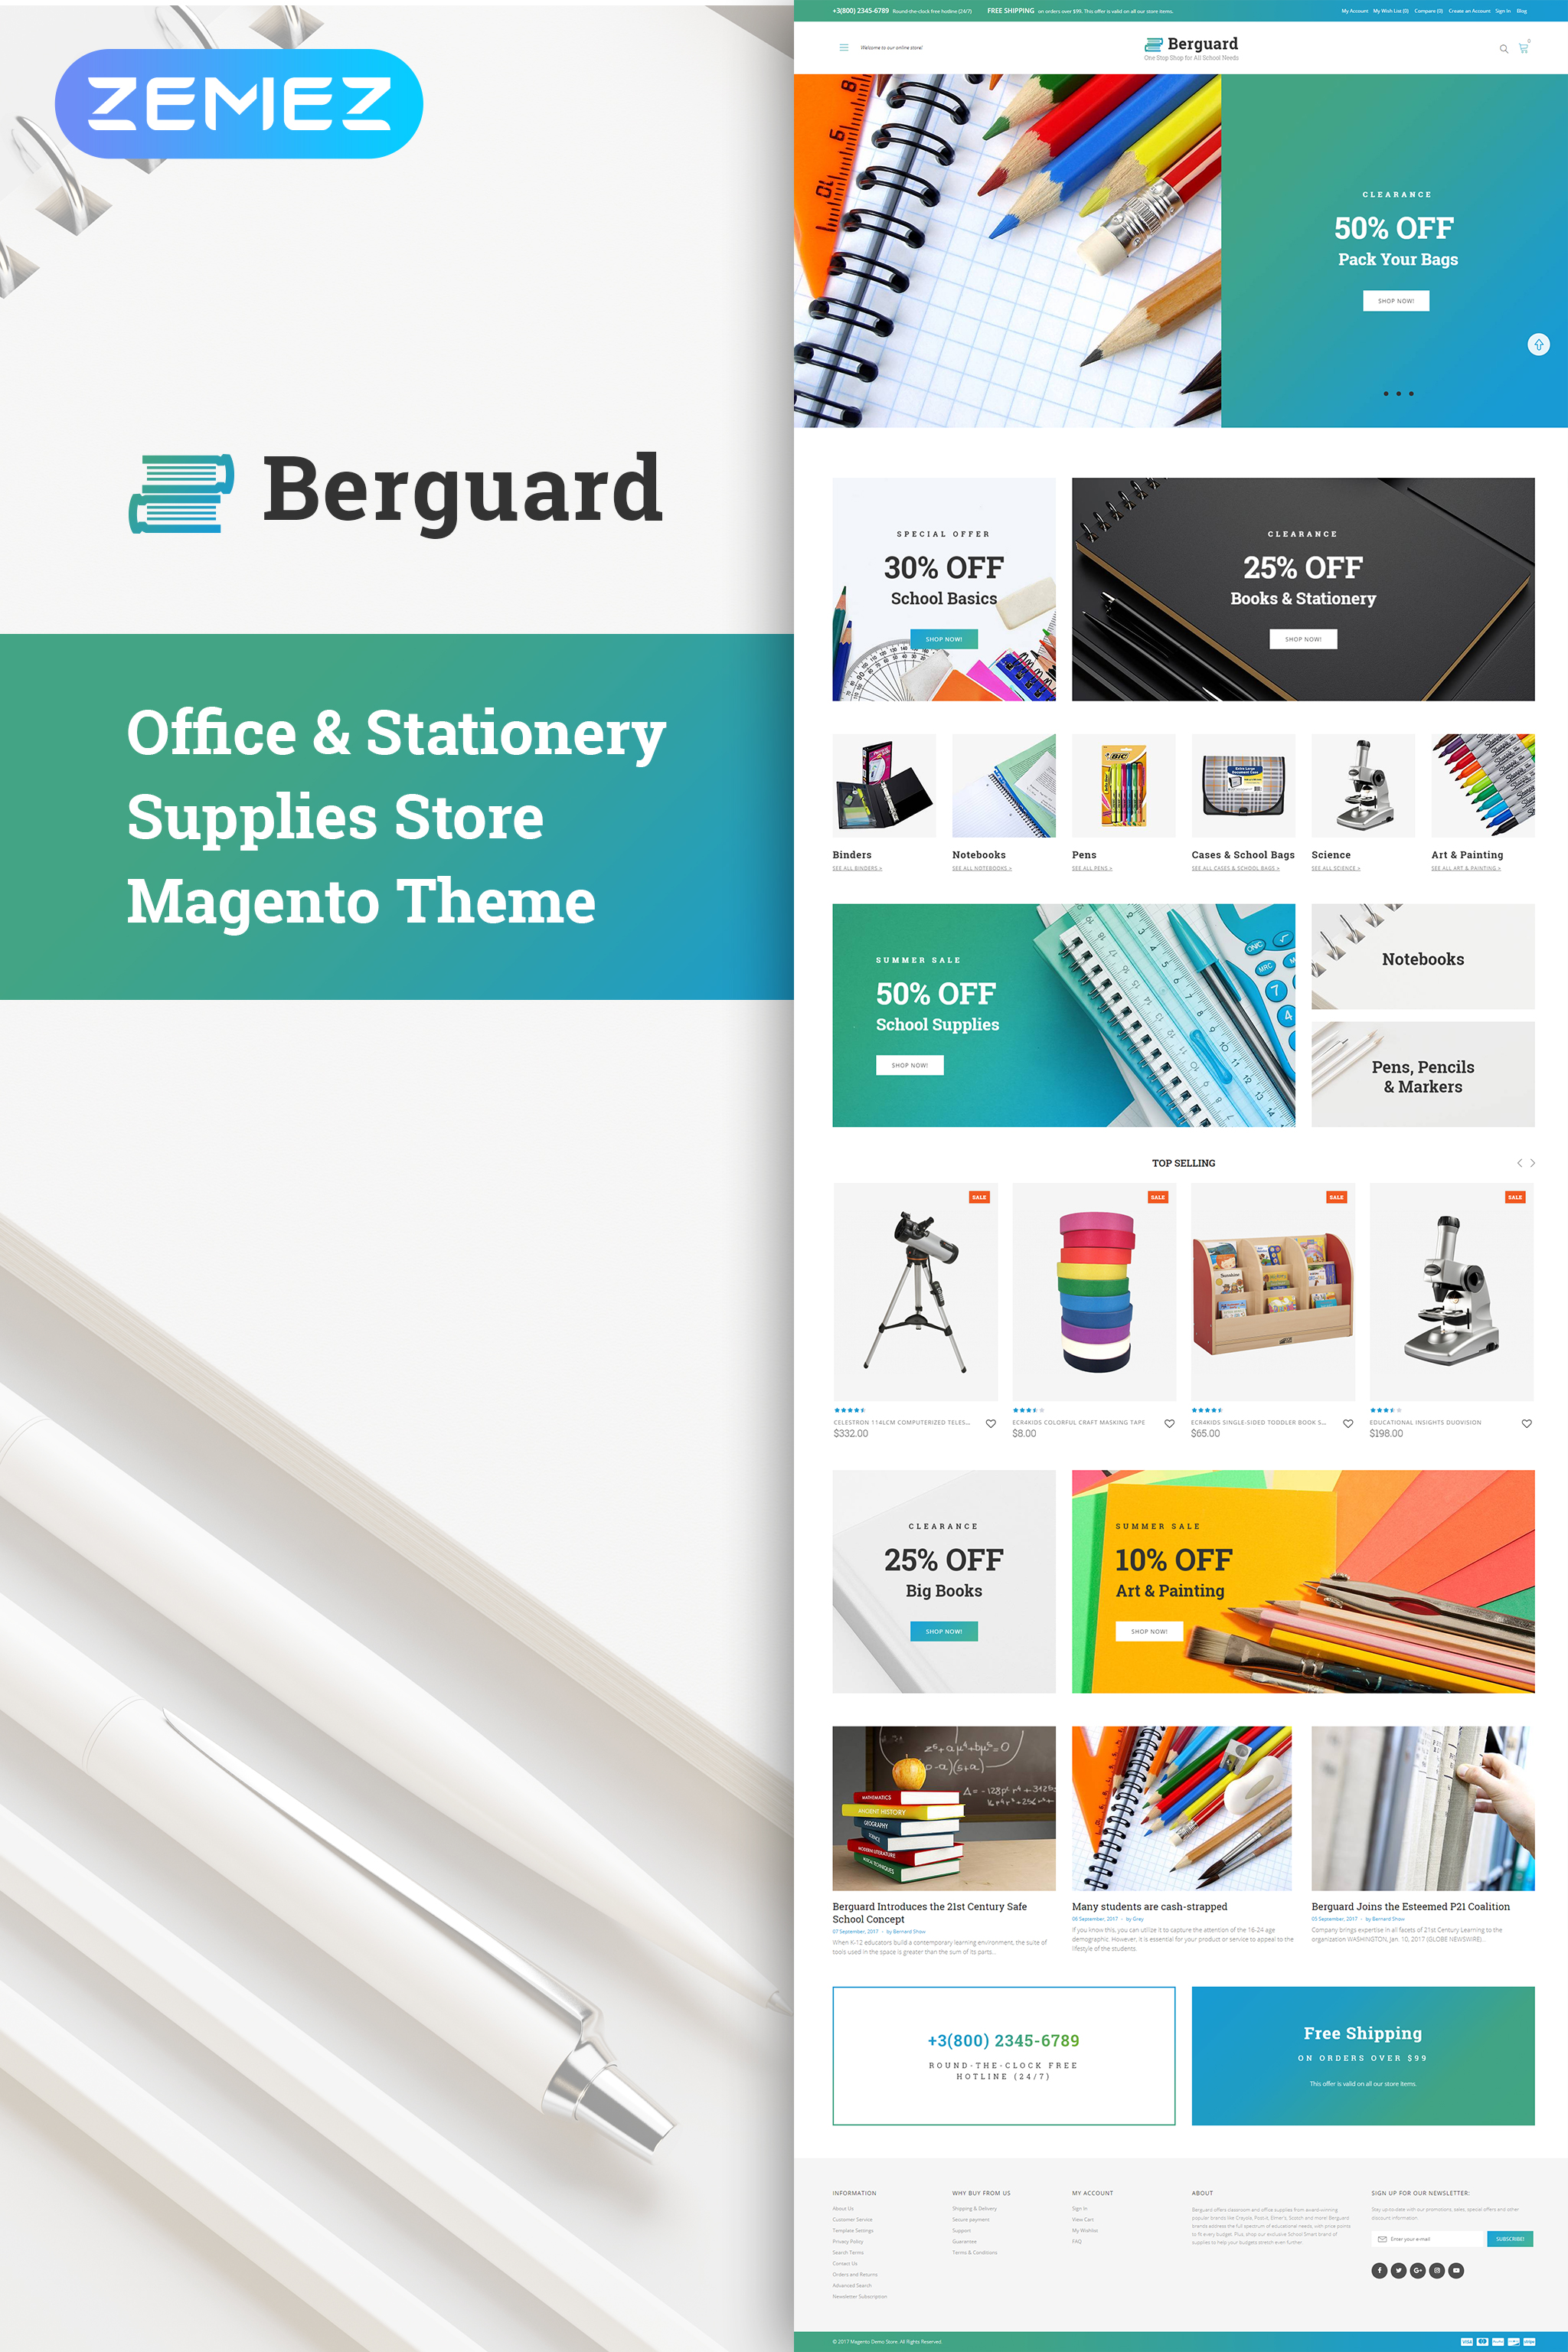 Berguard - Office & Stationery Supplies Magento #64137